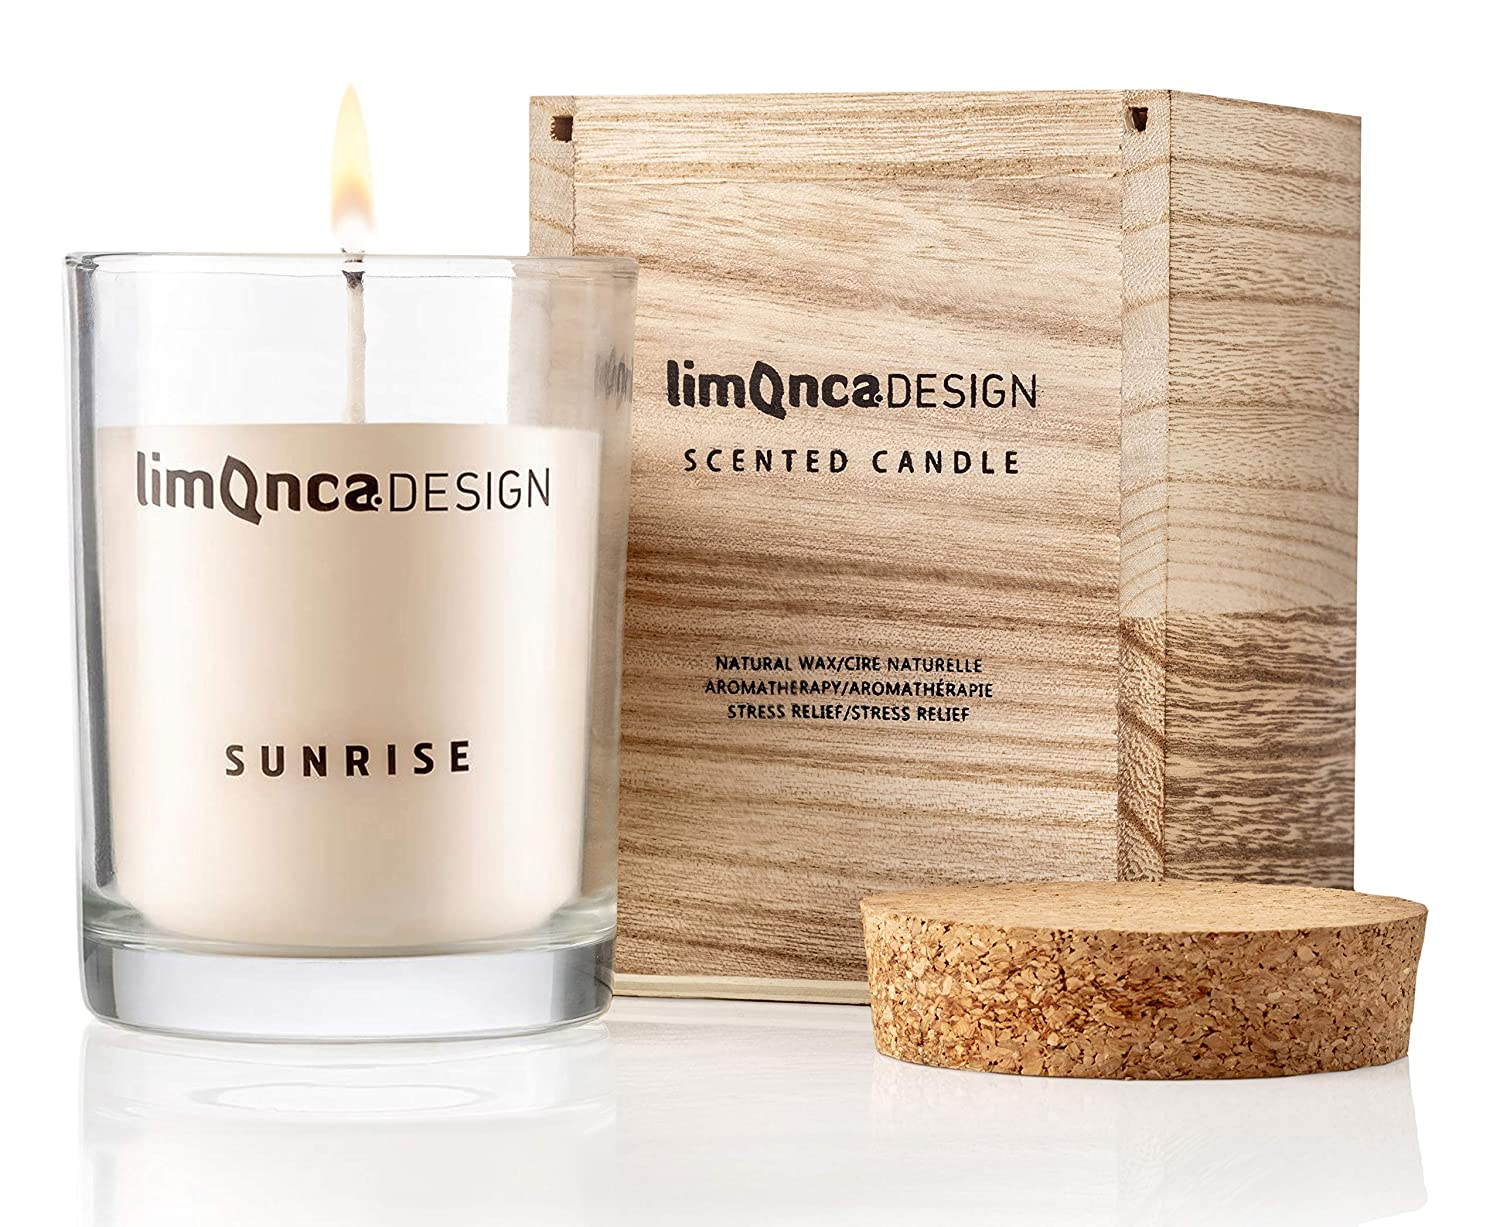 Roseblossom l Long Lasting- 70 Hours Limonca DESIGN Scented Candle Natural Scented Apple Natural Soy Wax Cork Lid Handmade Lemongrass Premium Aromatherapy | Wodden Box Gift Set